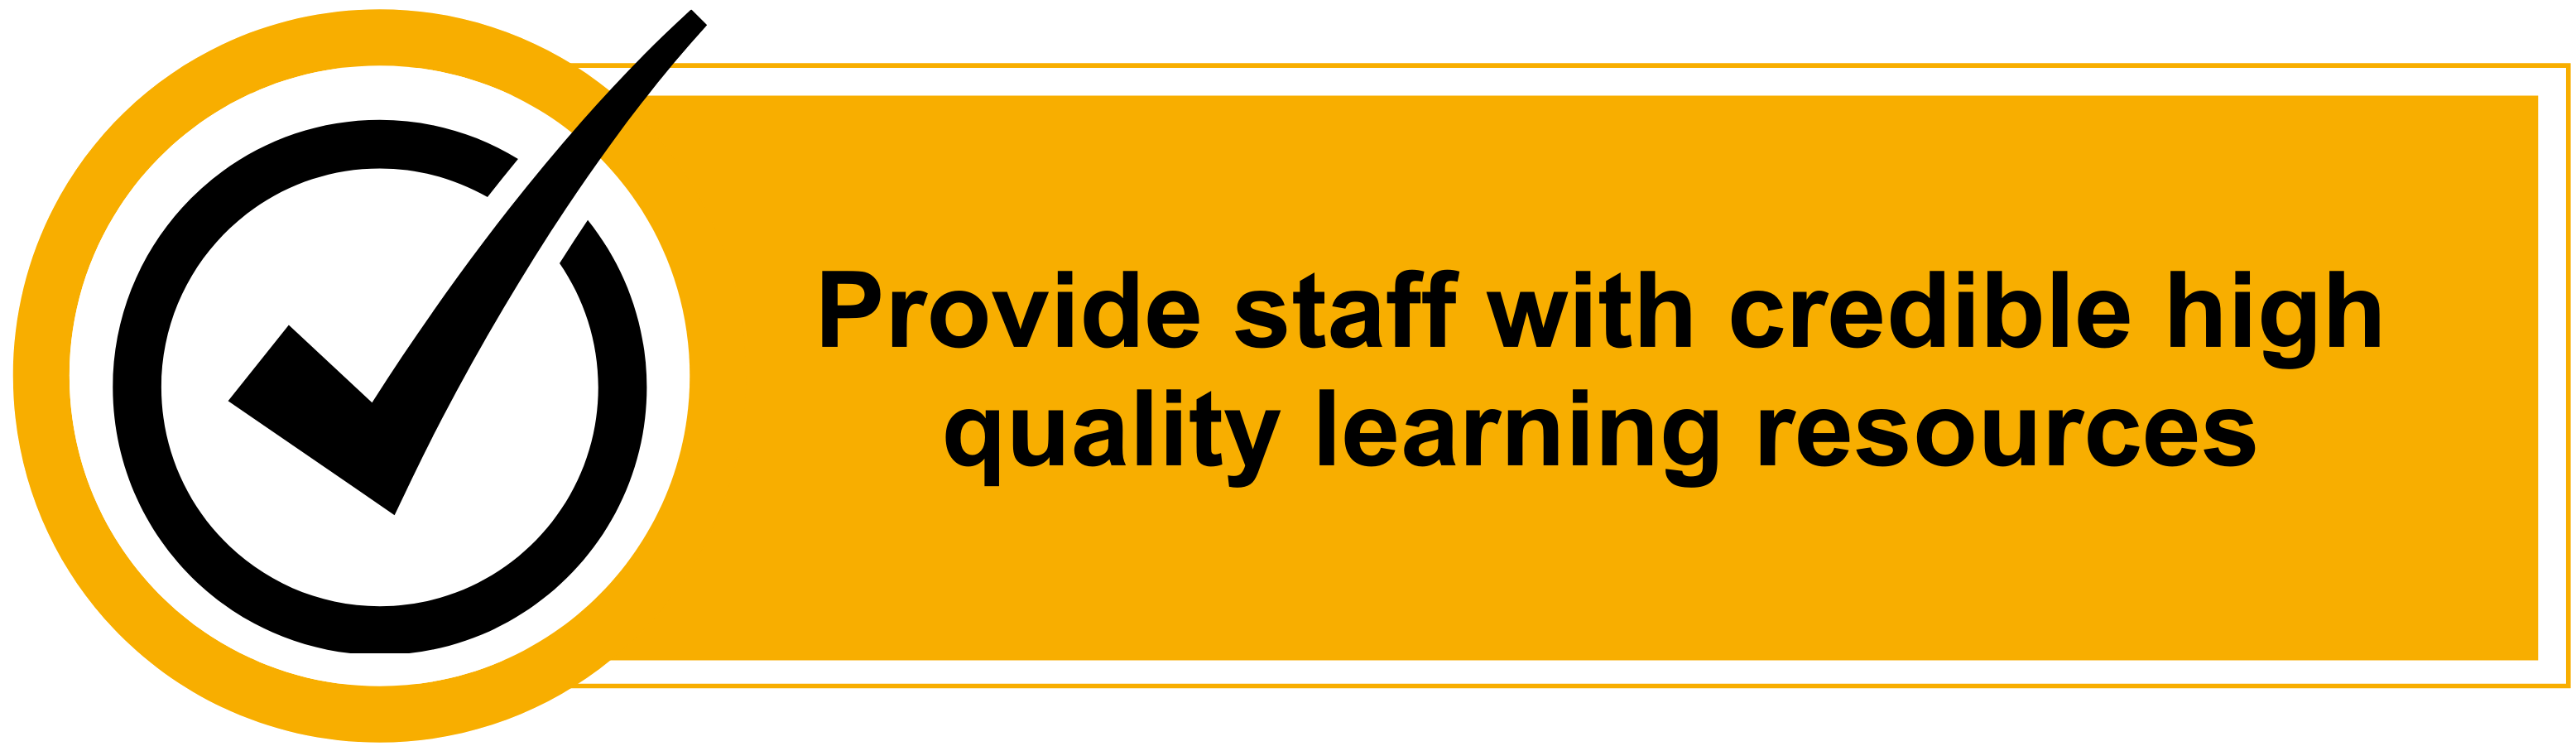 Provide staff with credible high quality learning resources